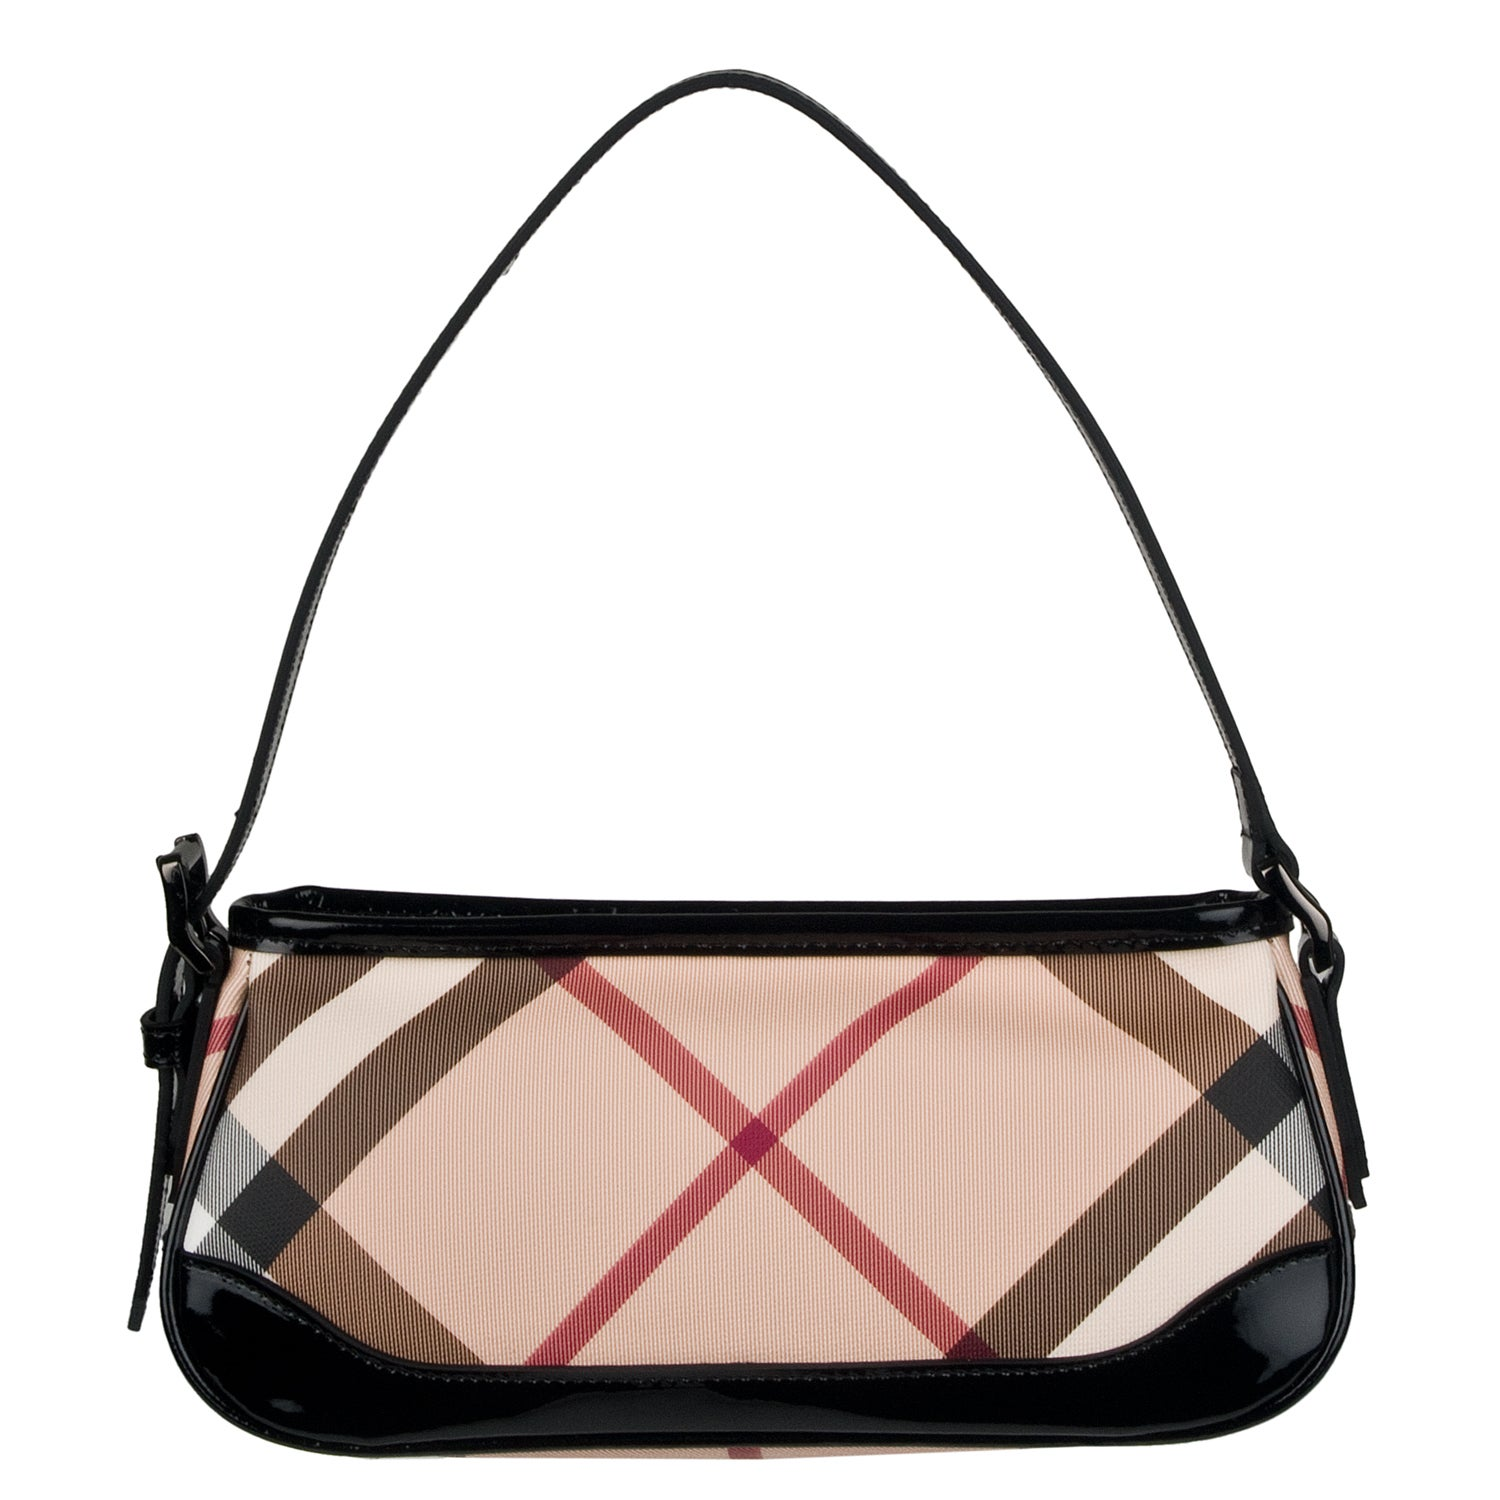 Cool Burberry Prorsum Embellished Check Sling Shoulder Bag  Handbags